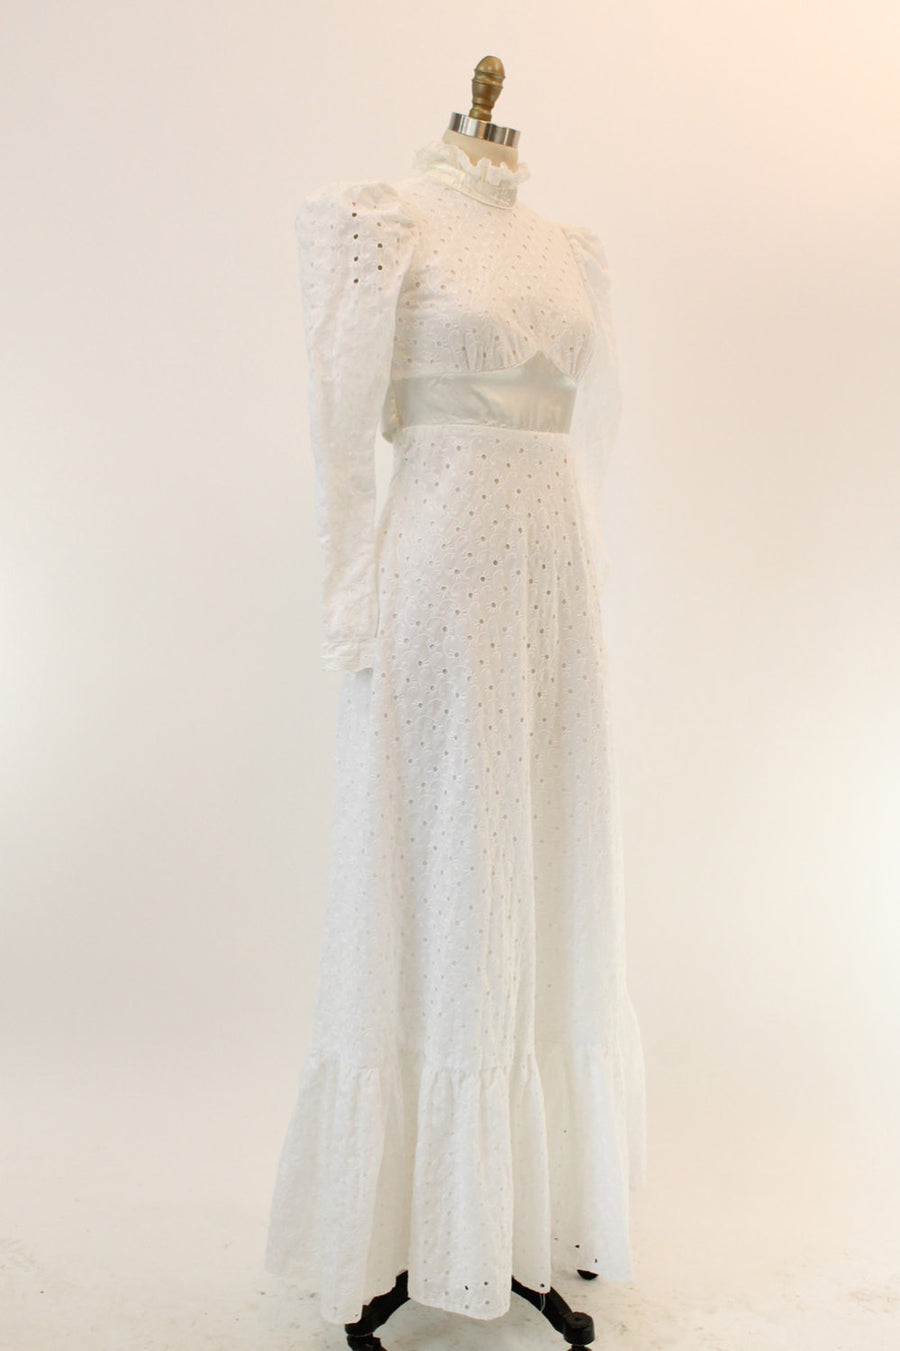 70s Dress Broderie Anglaise Lace Maxi S / 1970s Wedding Dress Eyelet Lace /  I Am in Love Dress